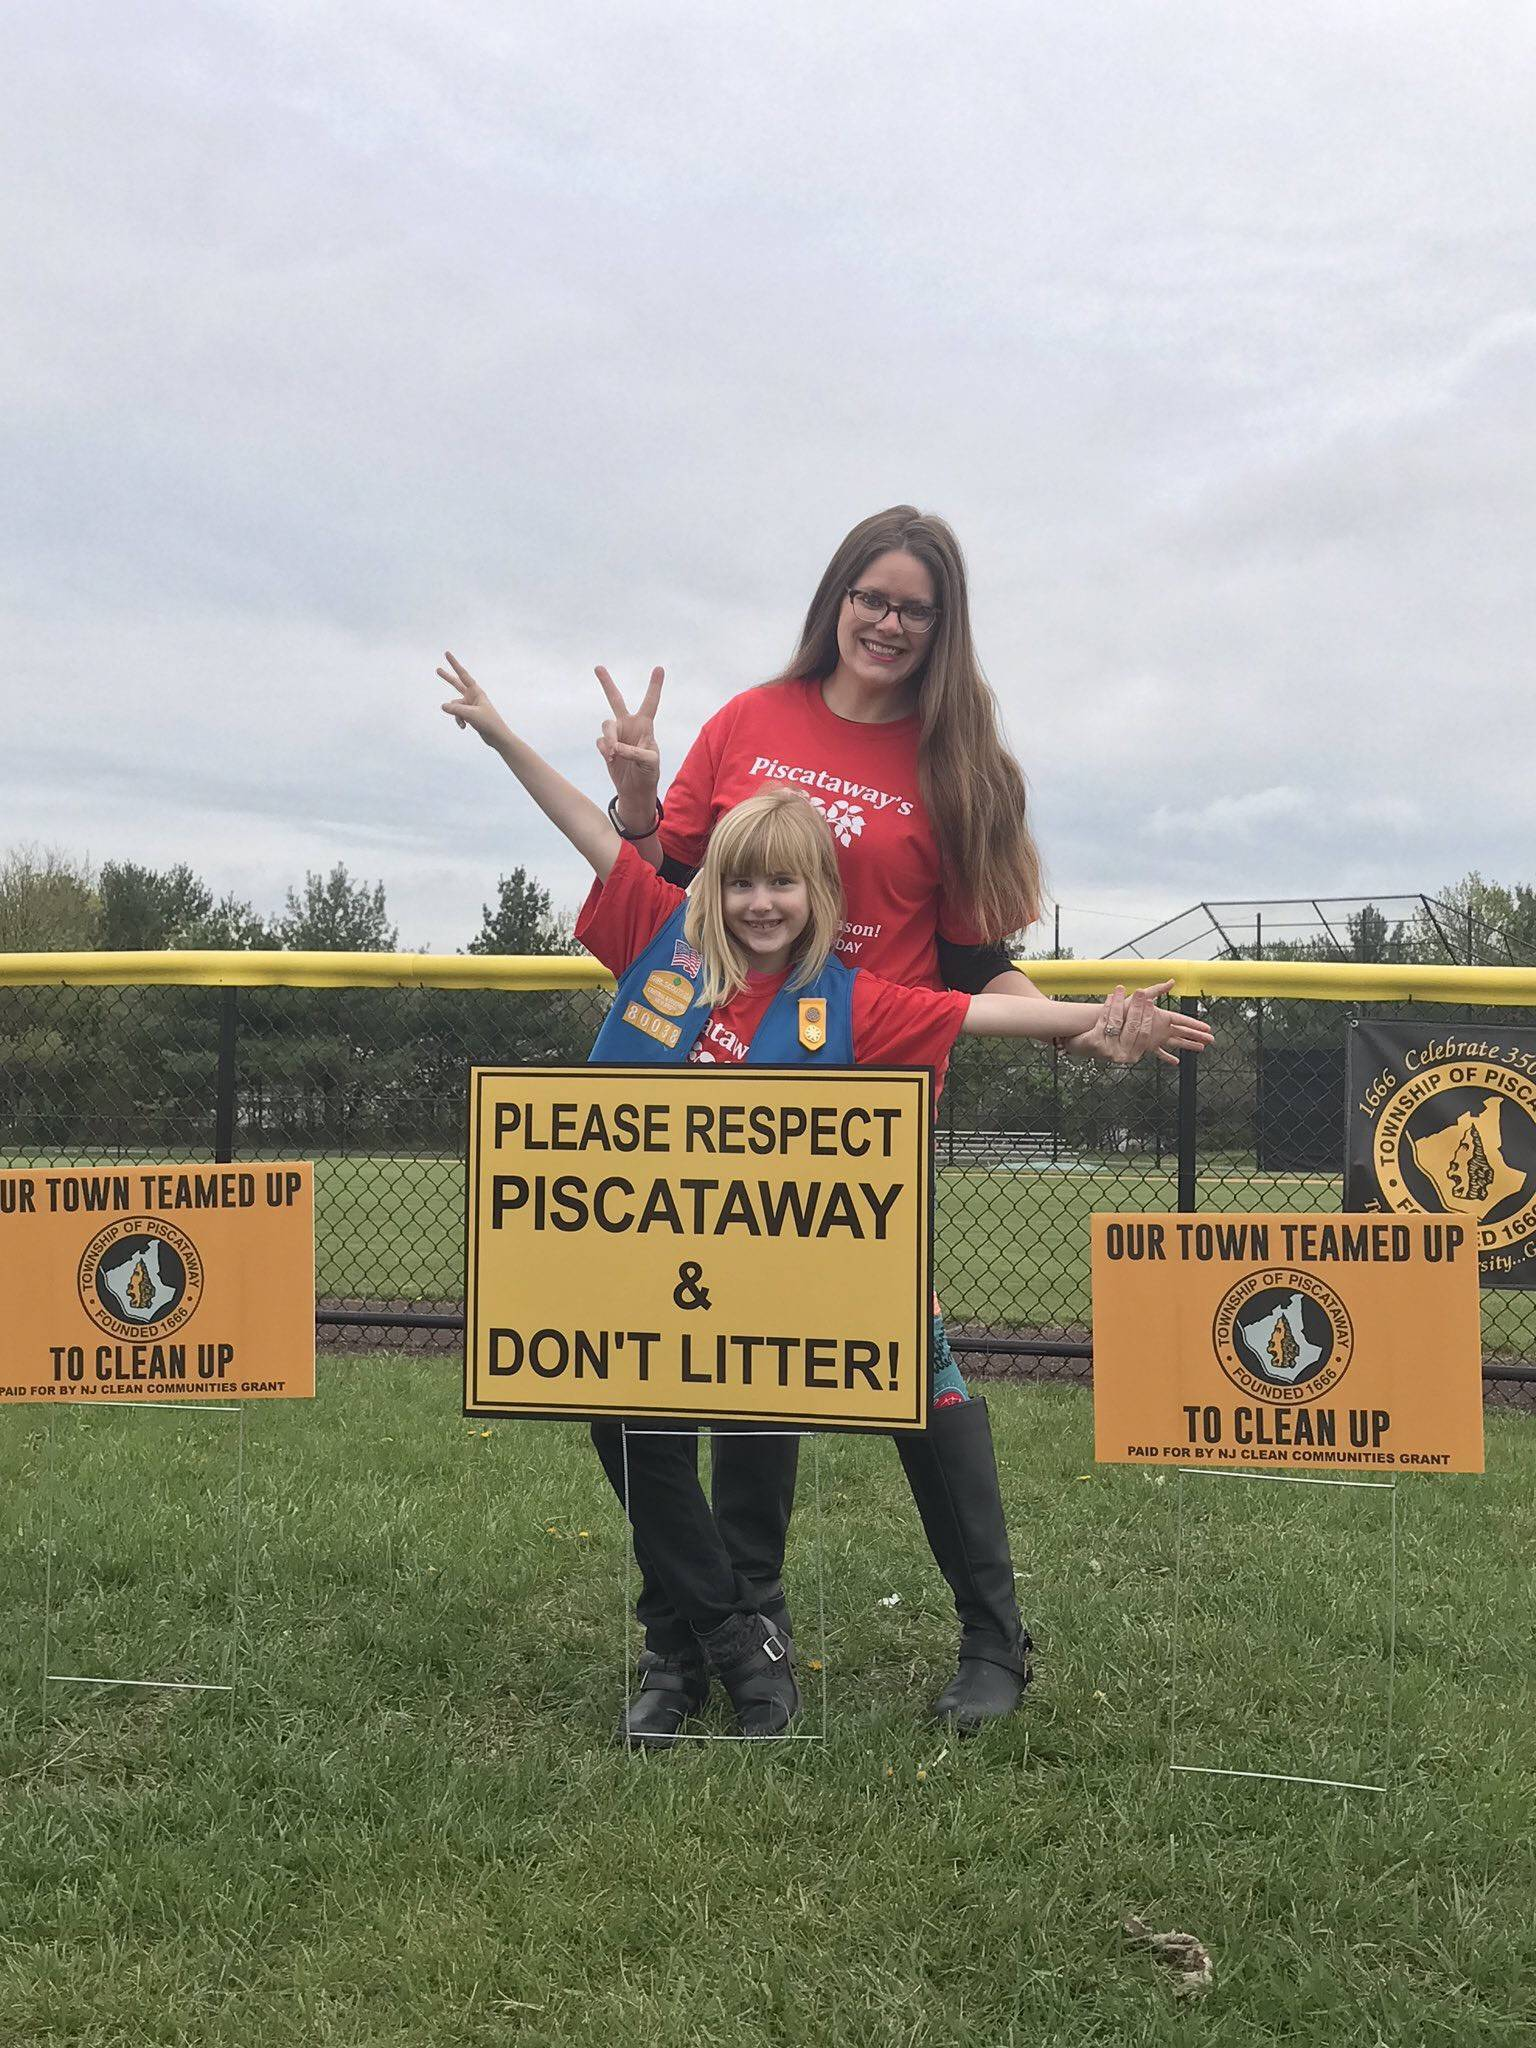 piscataway dating Piscataway, nj -- calling all sports fans and history buffs invite your friends and family to experience a live vintage baseball game using rules, uniforms, customs and equipment dating back.